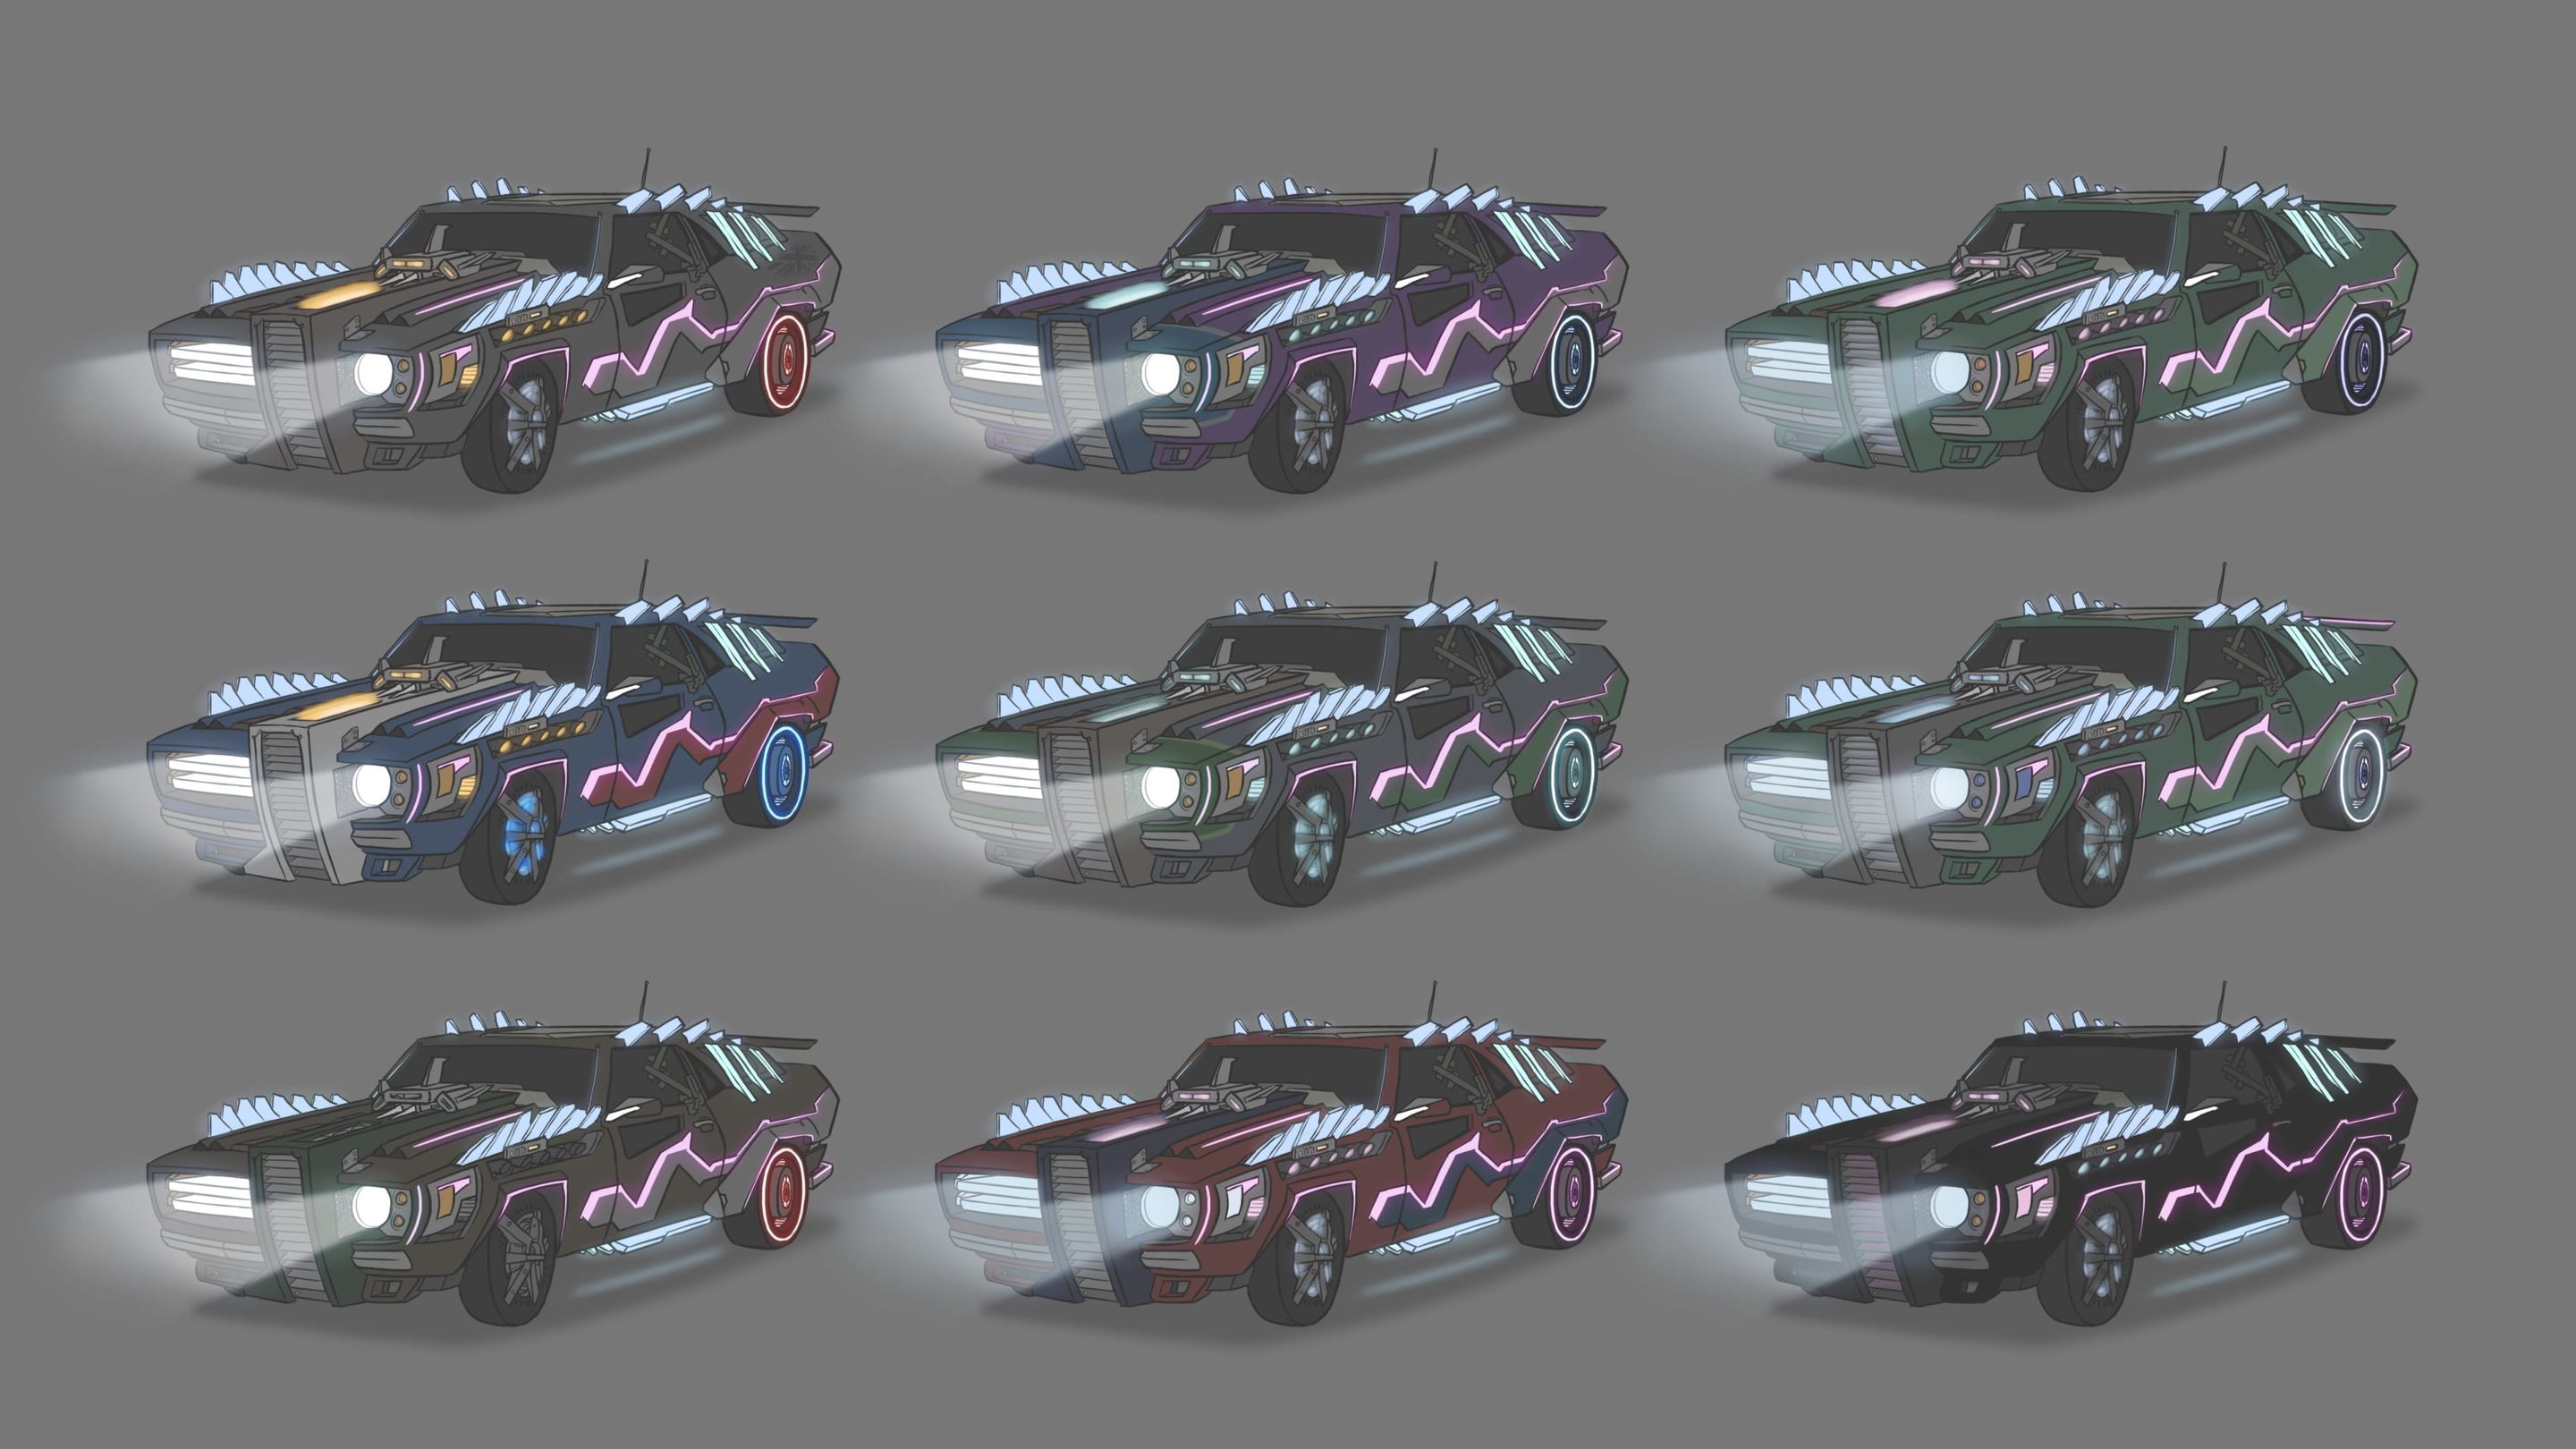 Neo-Racer: Vehicle Colour Iterations